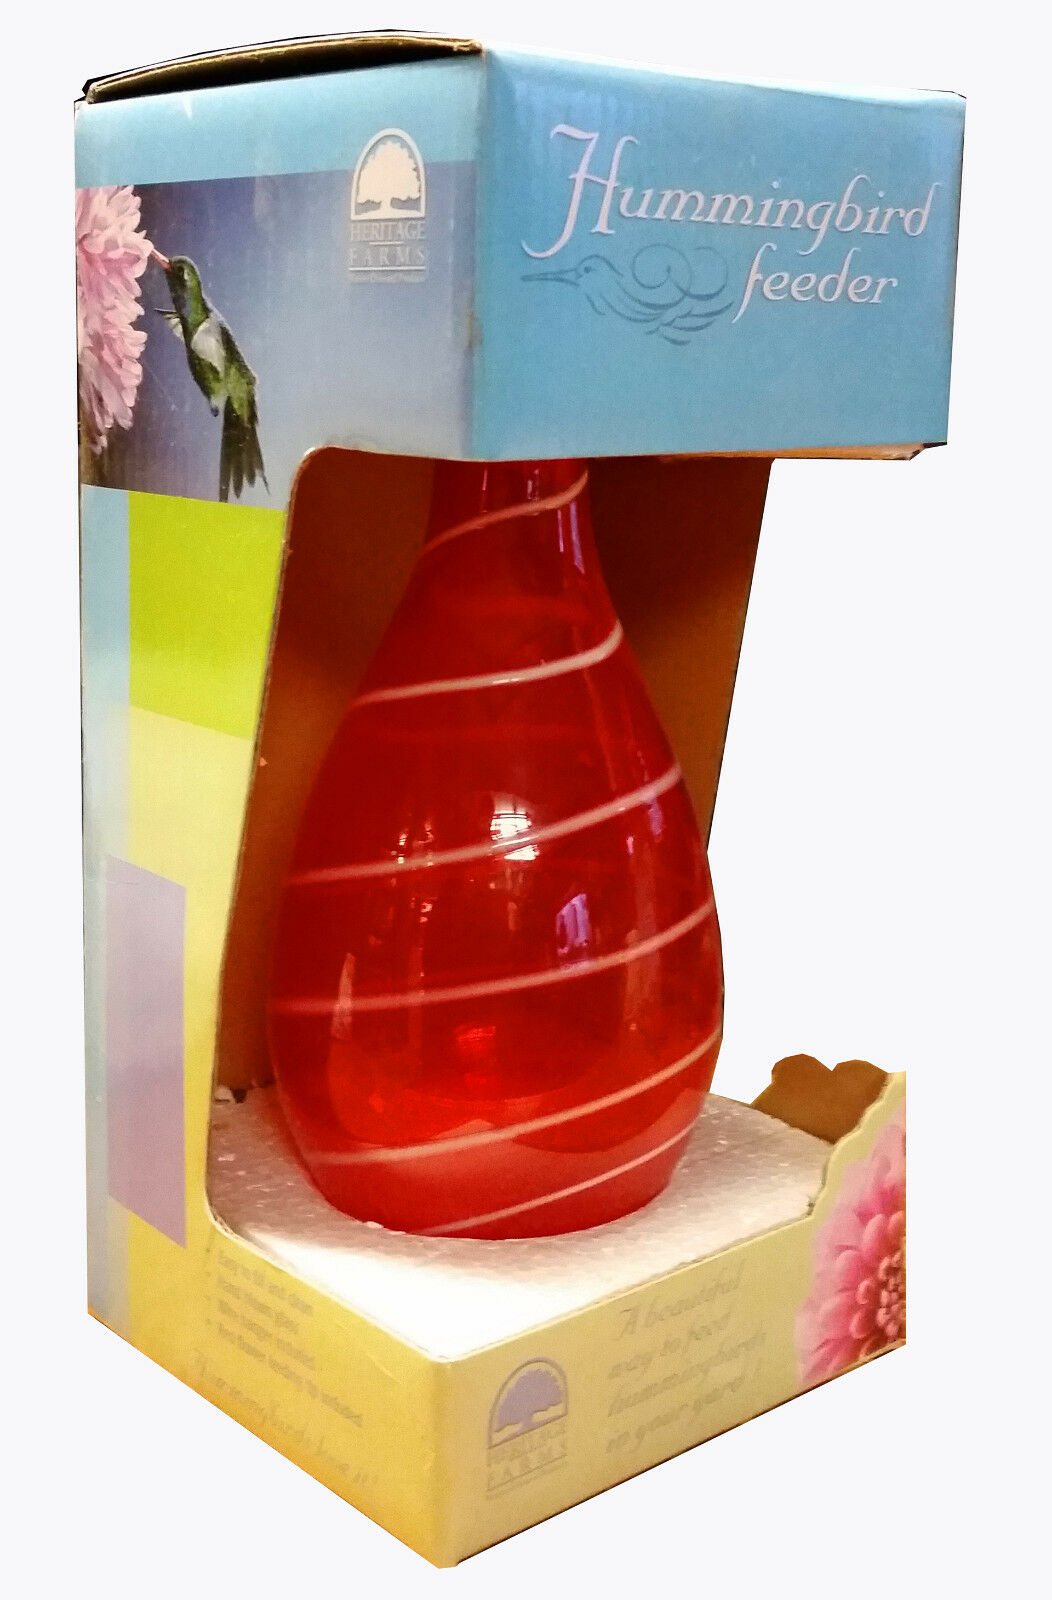 HERITAGE FARMS - RED GLASS HANGING HUMMINGBRD FEEDER (Single Spout)